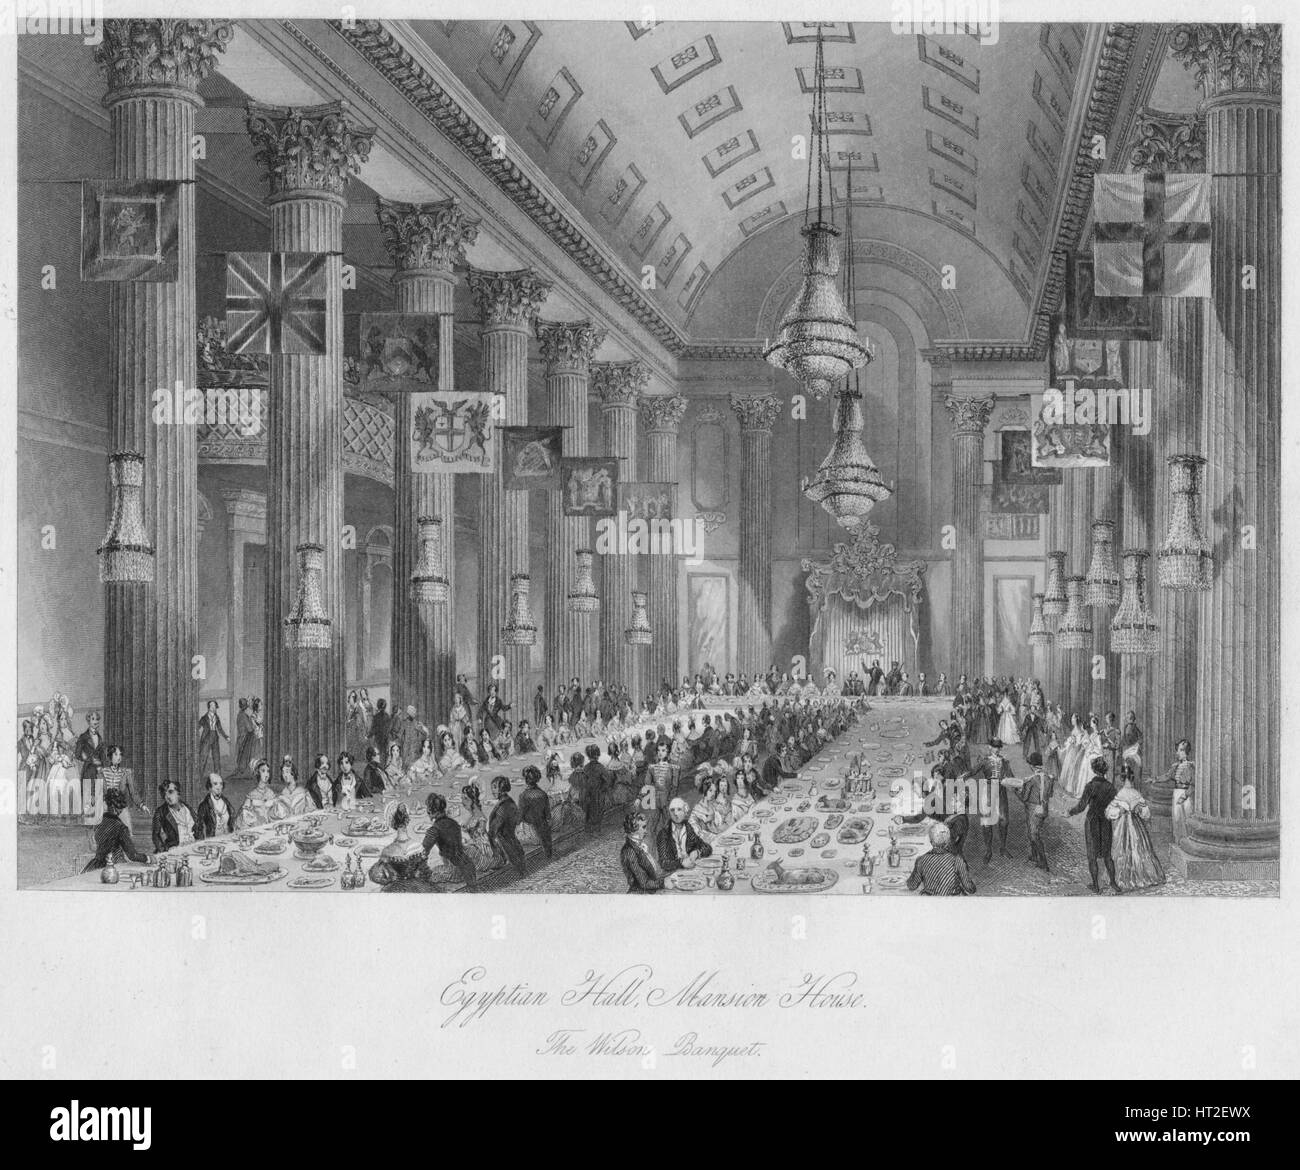 'Egyptian Hall, Mansion House: The Wilson Banquet', c1841. Artist: Henry Melville. - Stock Image